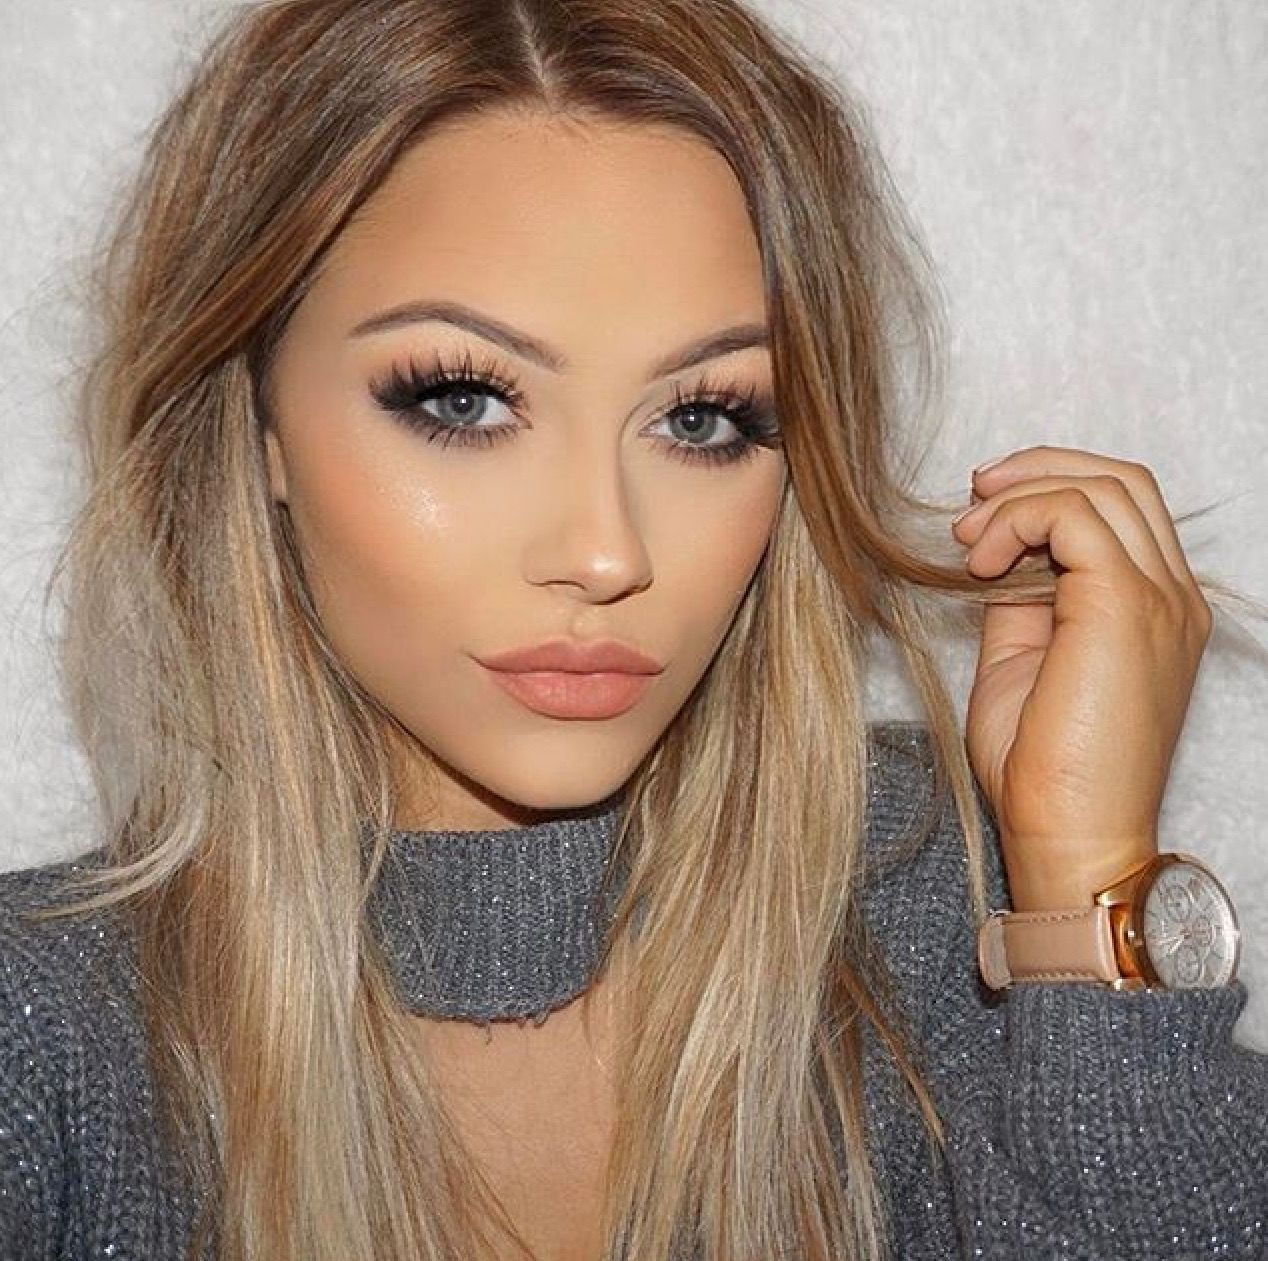 Pin by James on Rhia Olivia in 2019 | Beauty makeup ...